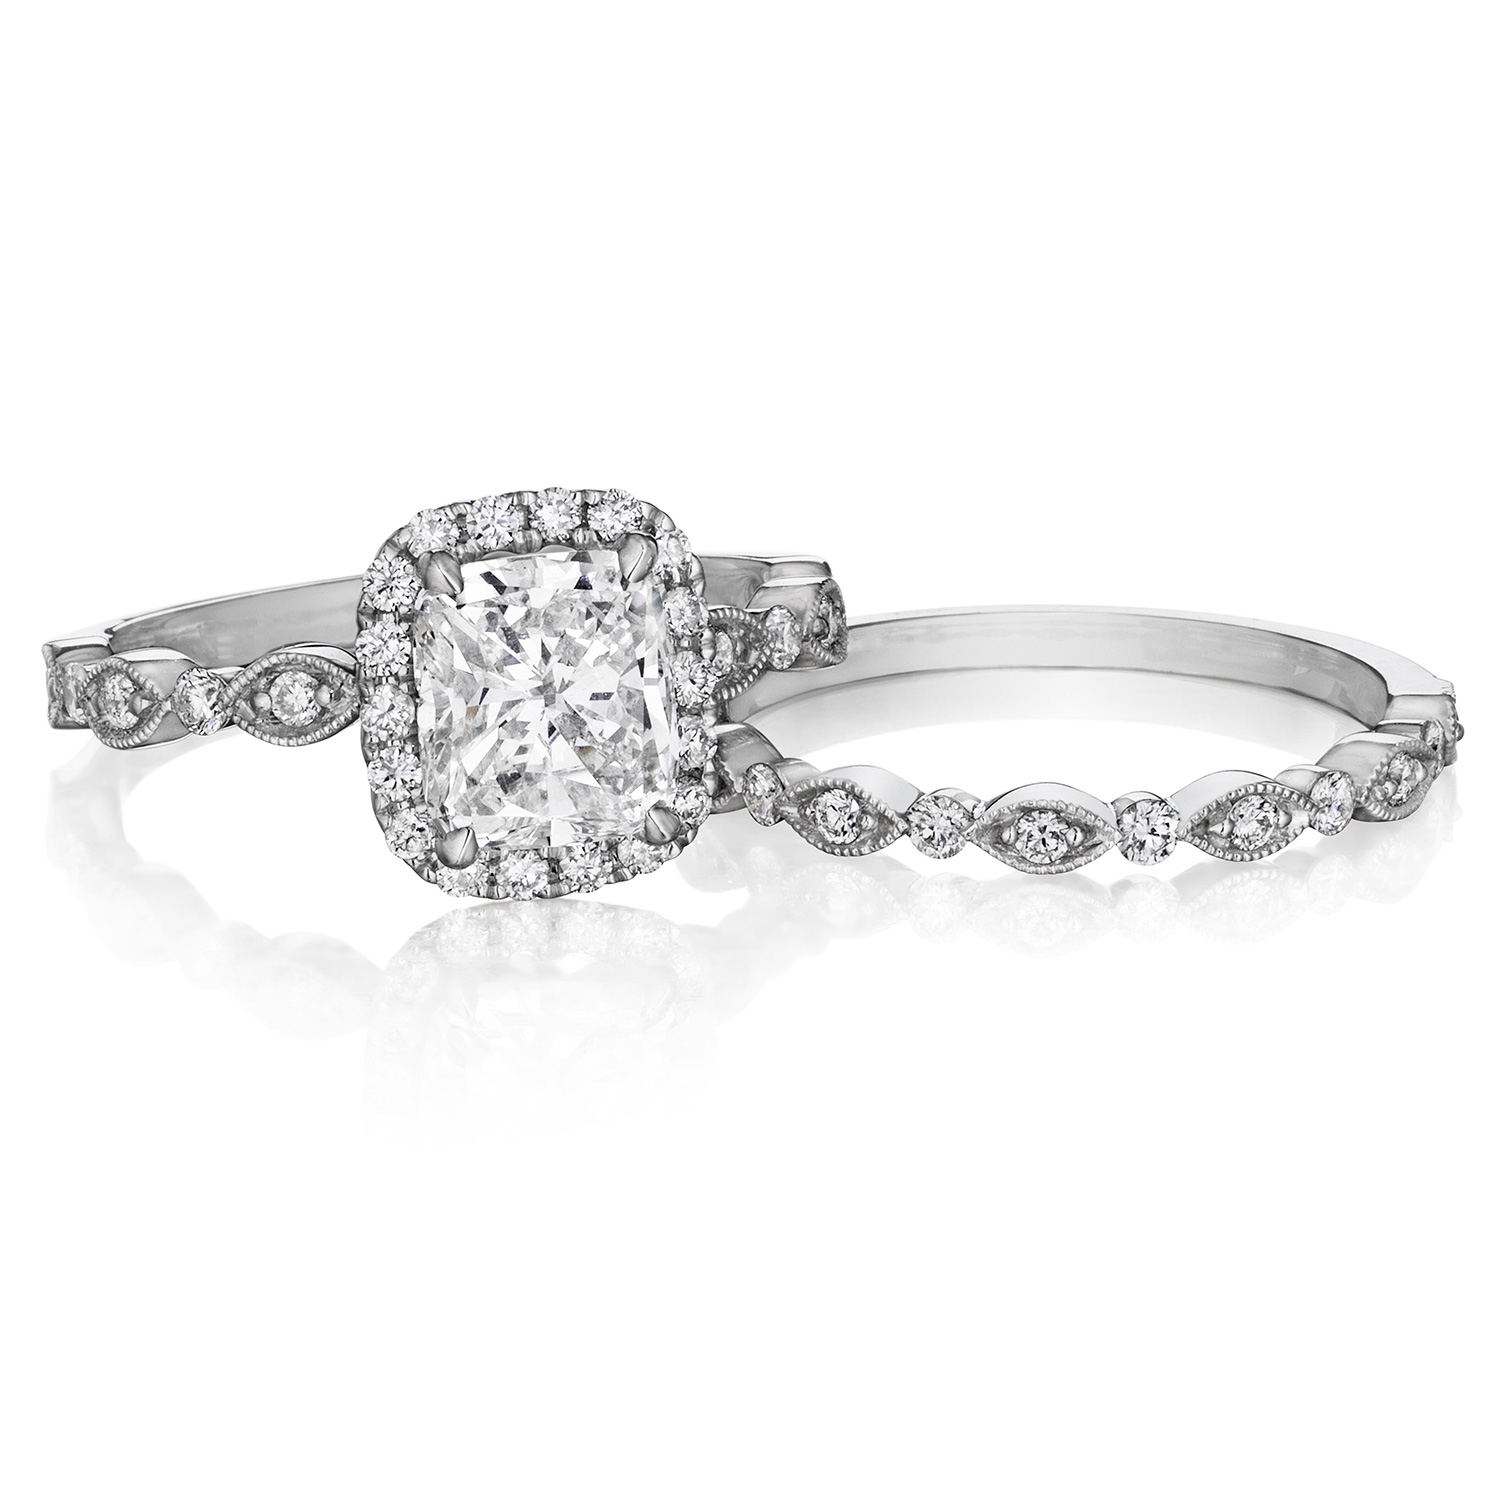 Henri Daussi AGC Cushion Halo Floral Inspired Antique Diamond Engagement Ring Alternative View 2